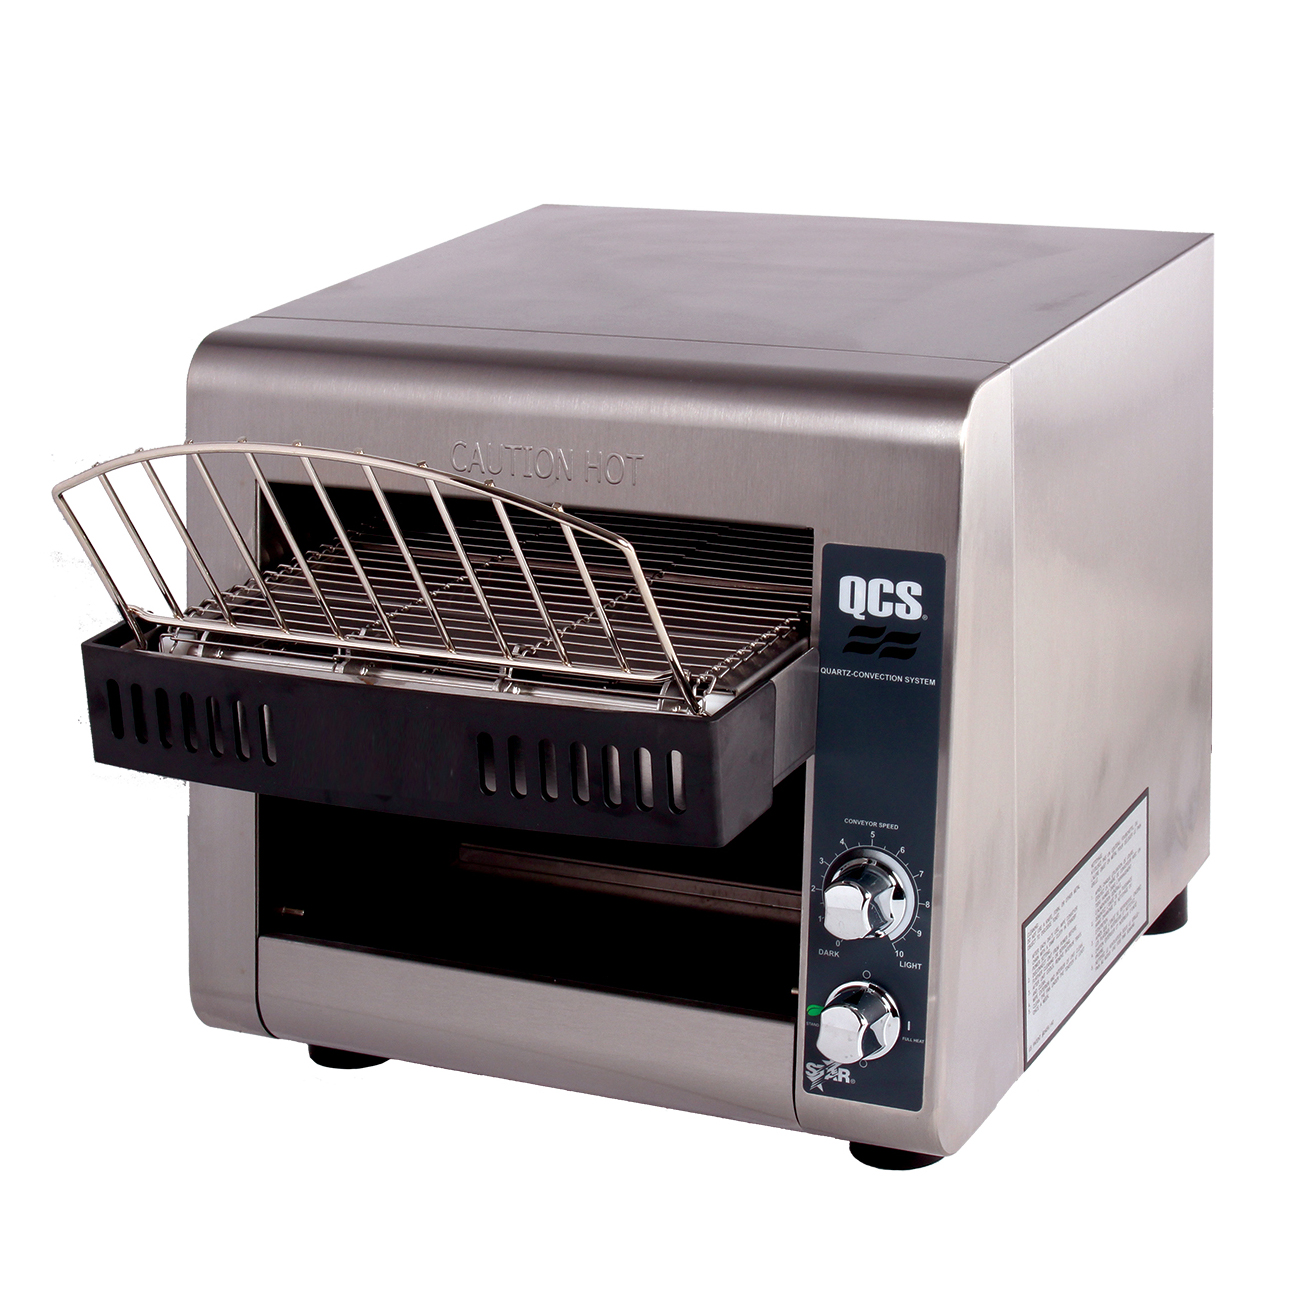 Star QCS1-350-120C toaster, conveyor type